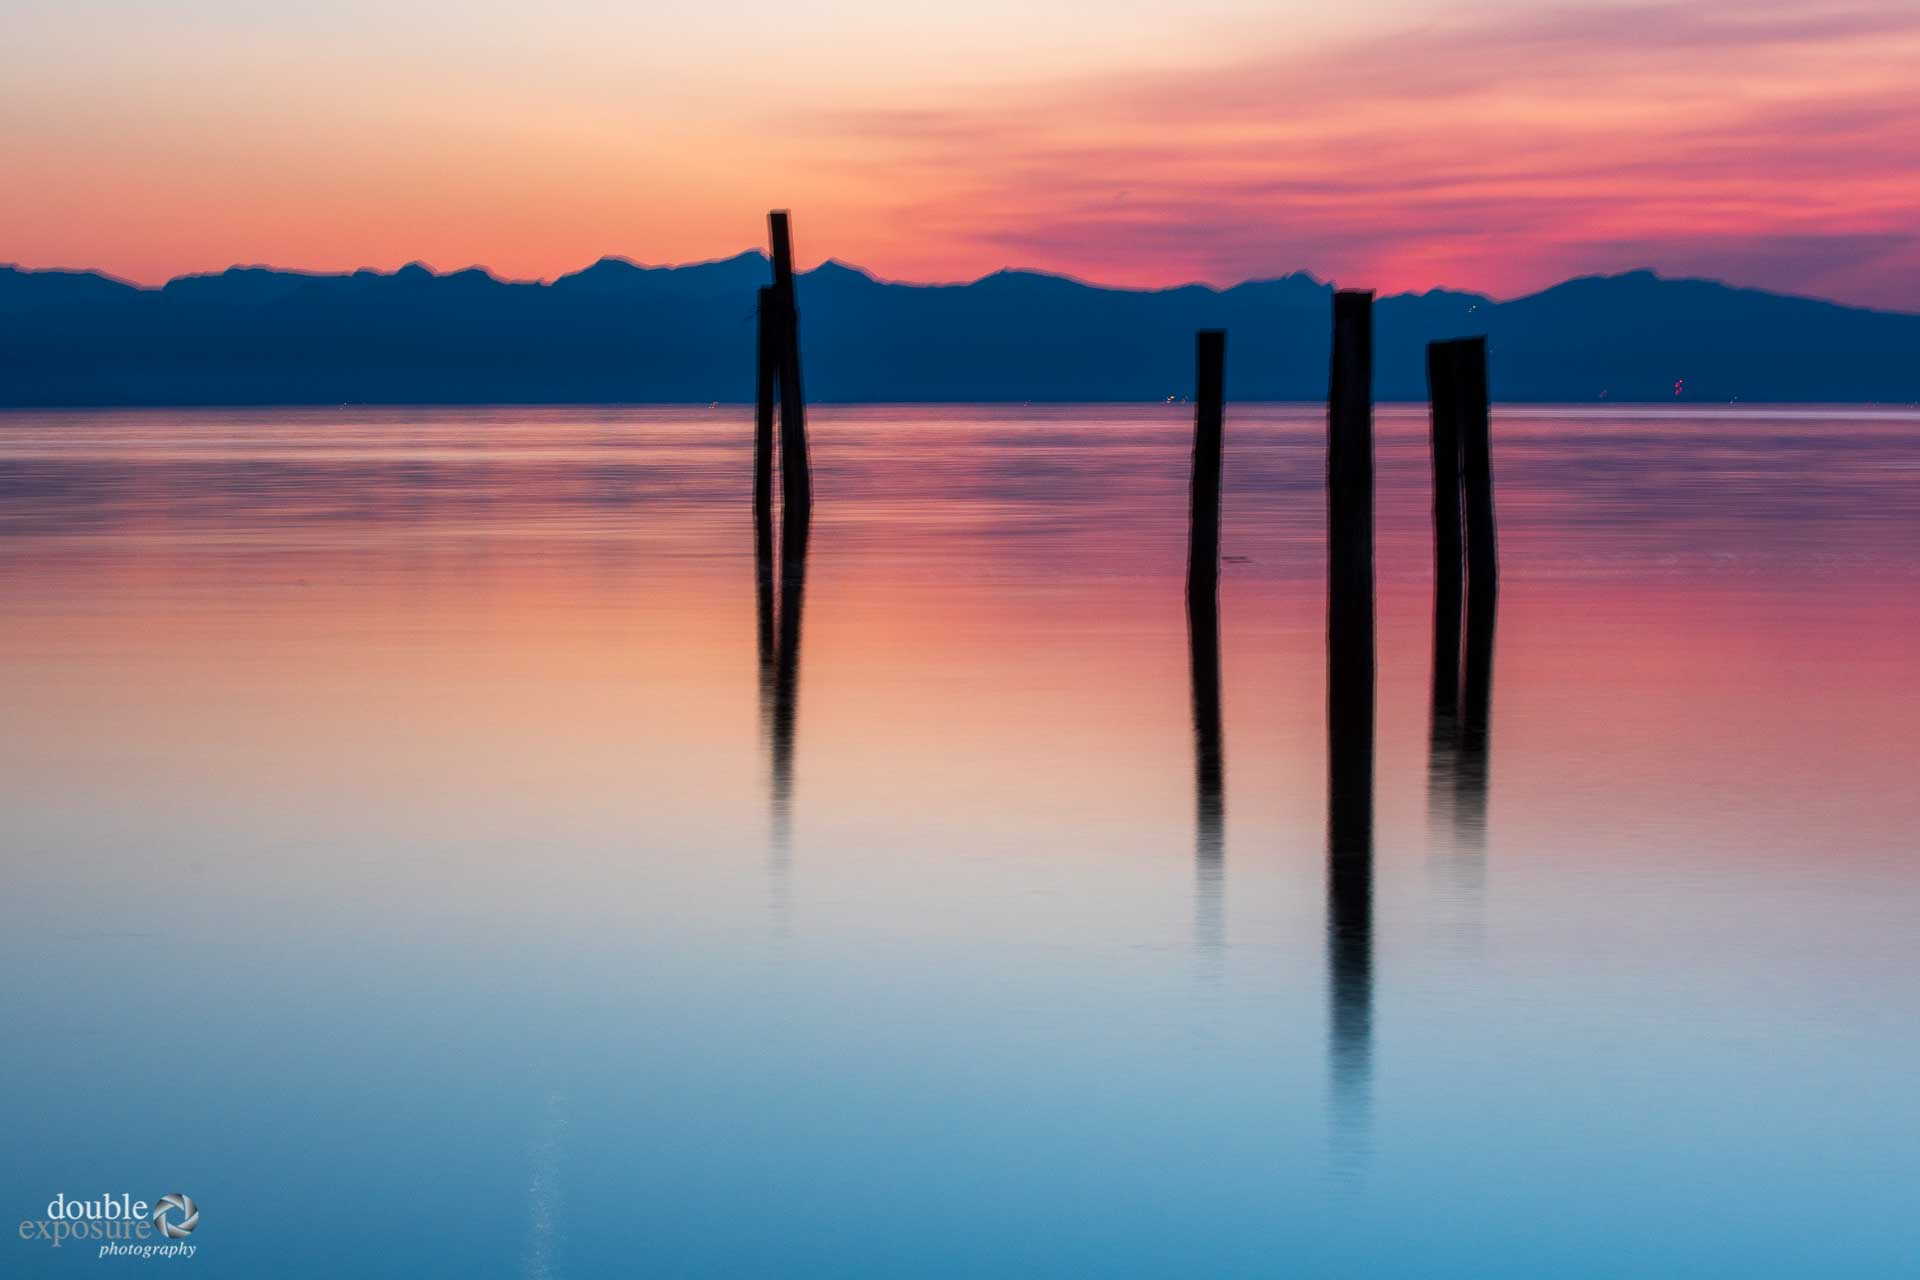 Old pilings in the ocean at sunset